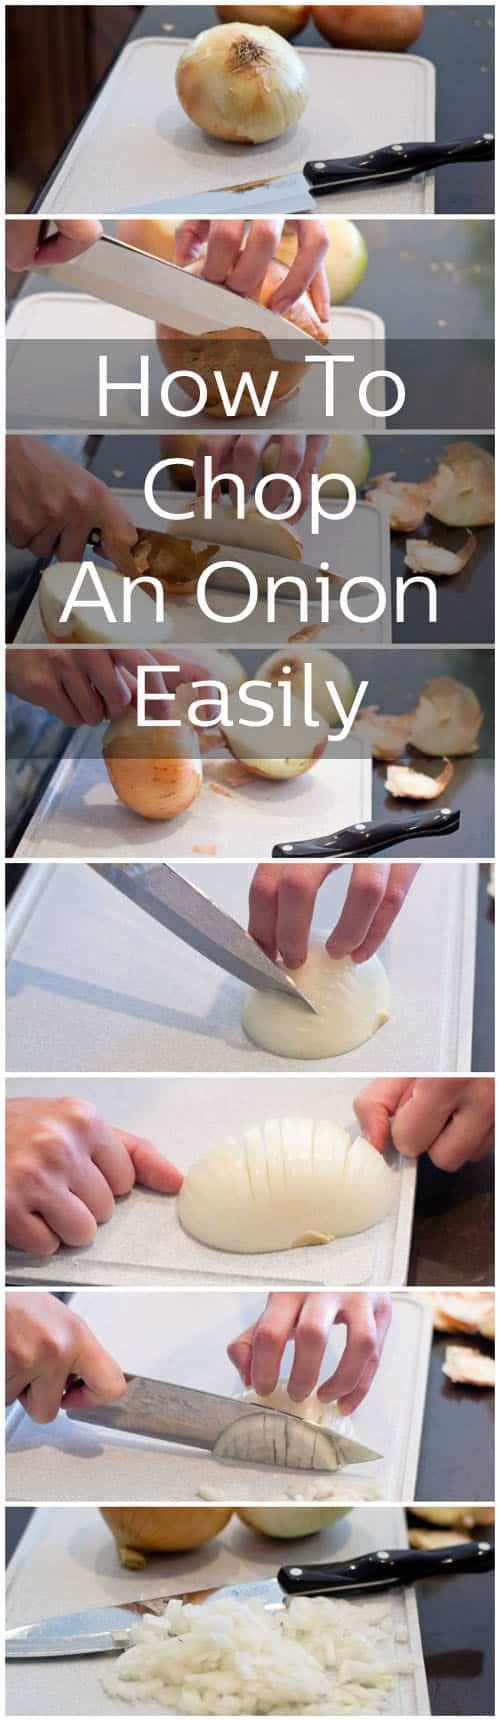 Step by step, the easiest way to chop an onion